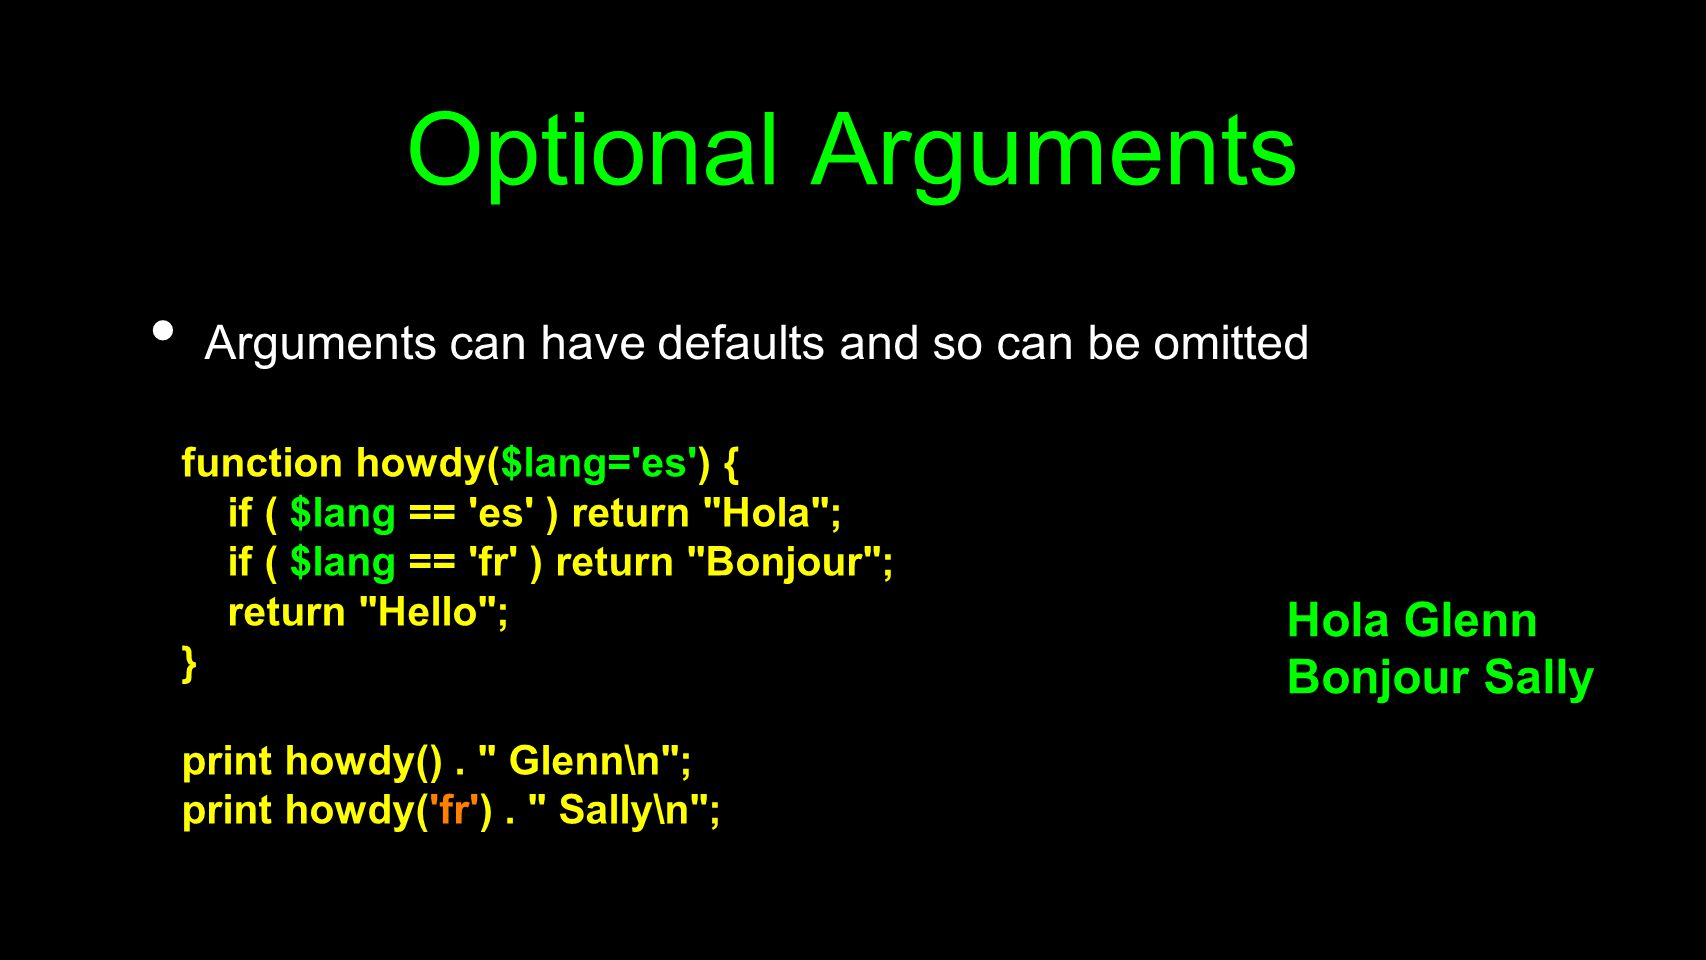 Optional Arguments Arguments can have defaults and so can be omitted function howdy($lang='es') { if ( $lang == 'es' ) return